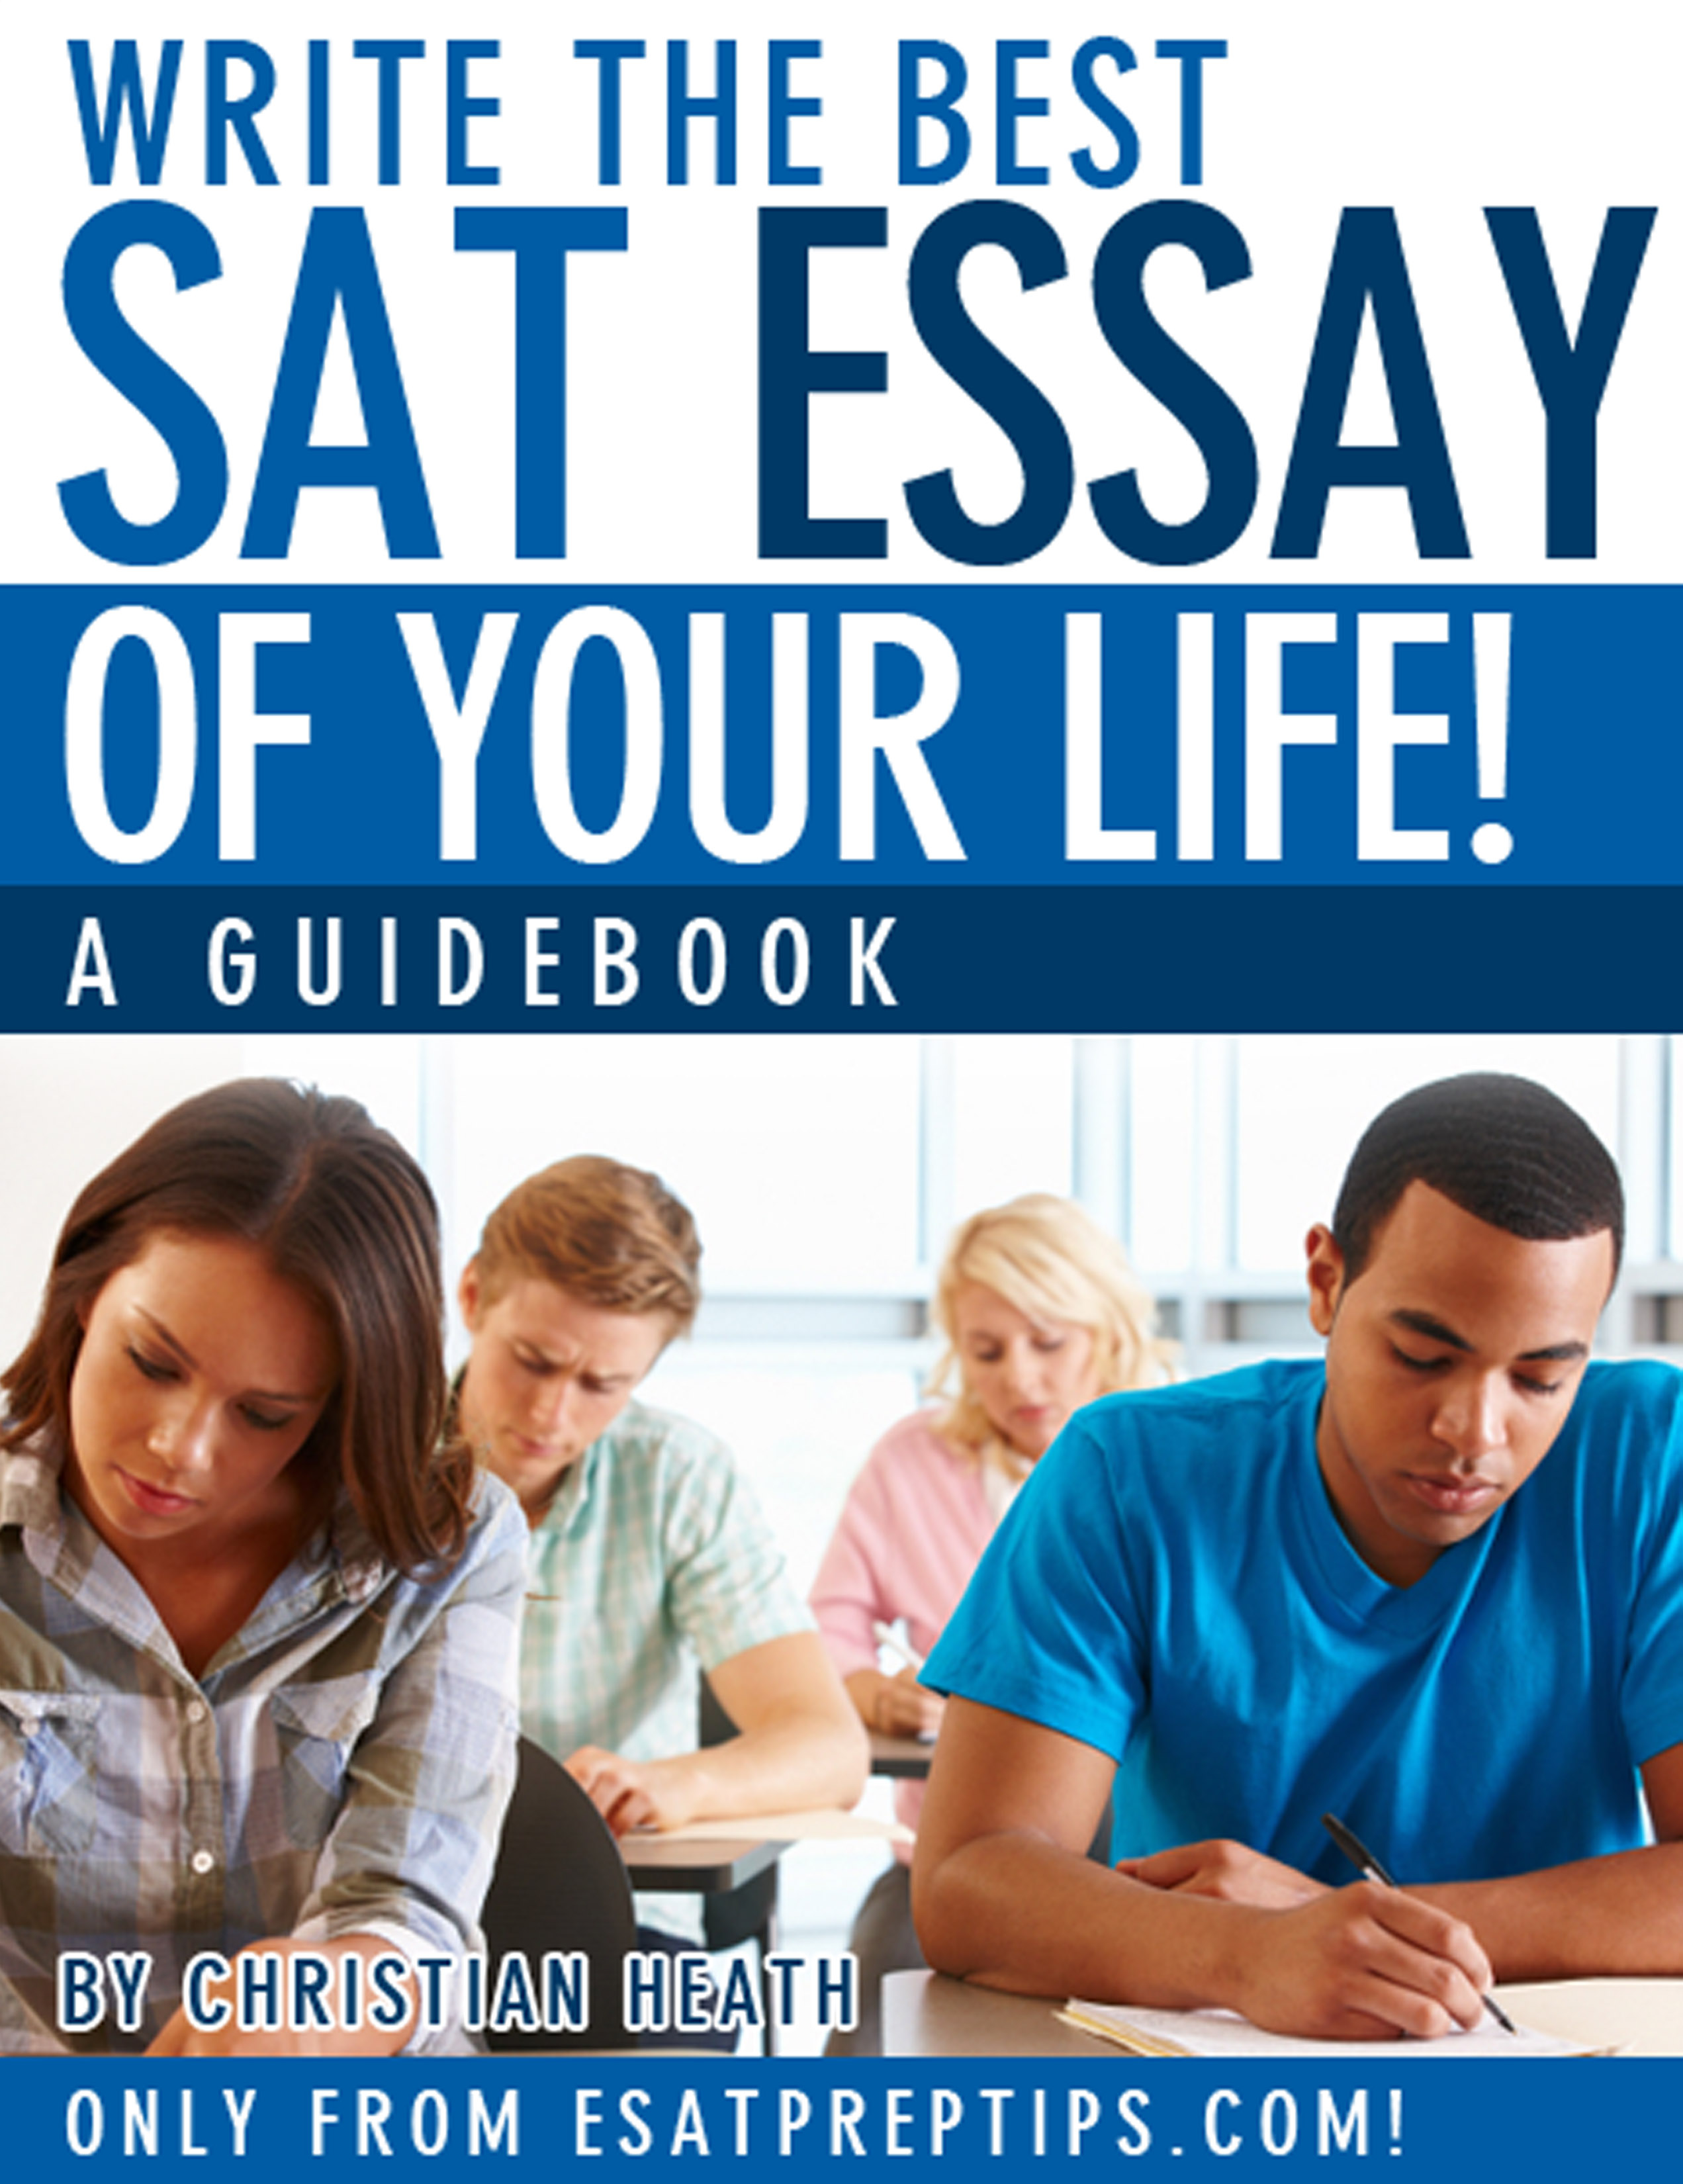 Write The Best SAT Essay Of Your Life! A Guidebook - eSAT